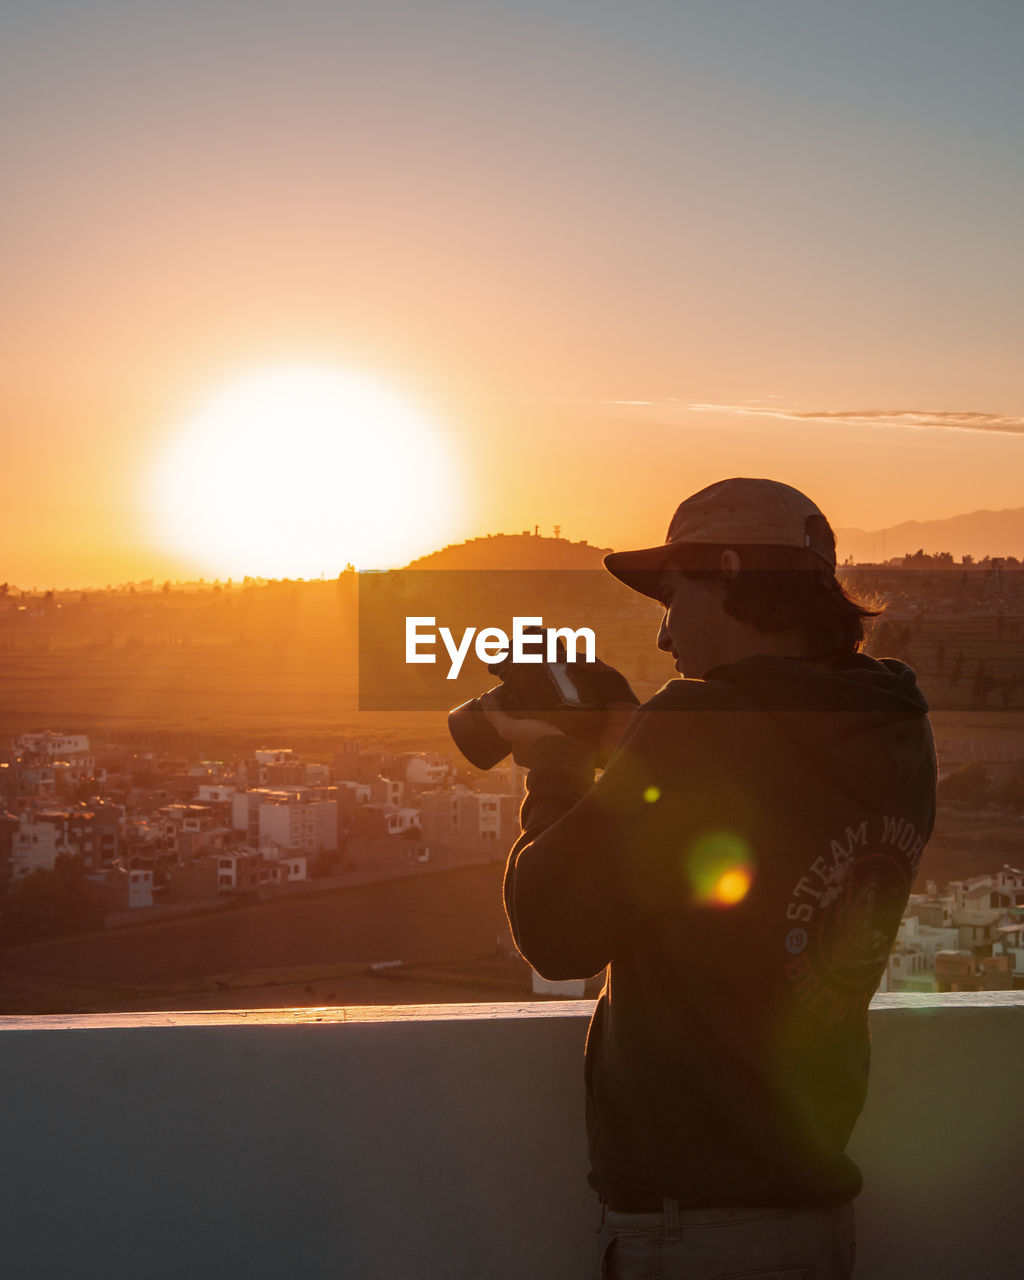 sunset, sky, real people, one person, orange color, sun, photographing, photography themes, nature, lens flare, standing, men, sunlight, building exterior, camera - photographic equipment, technology, activity, wireless technology, architecture, side view, cityscape, outdoors